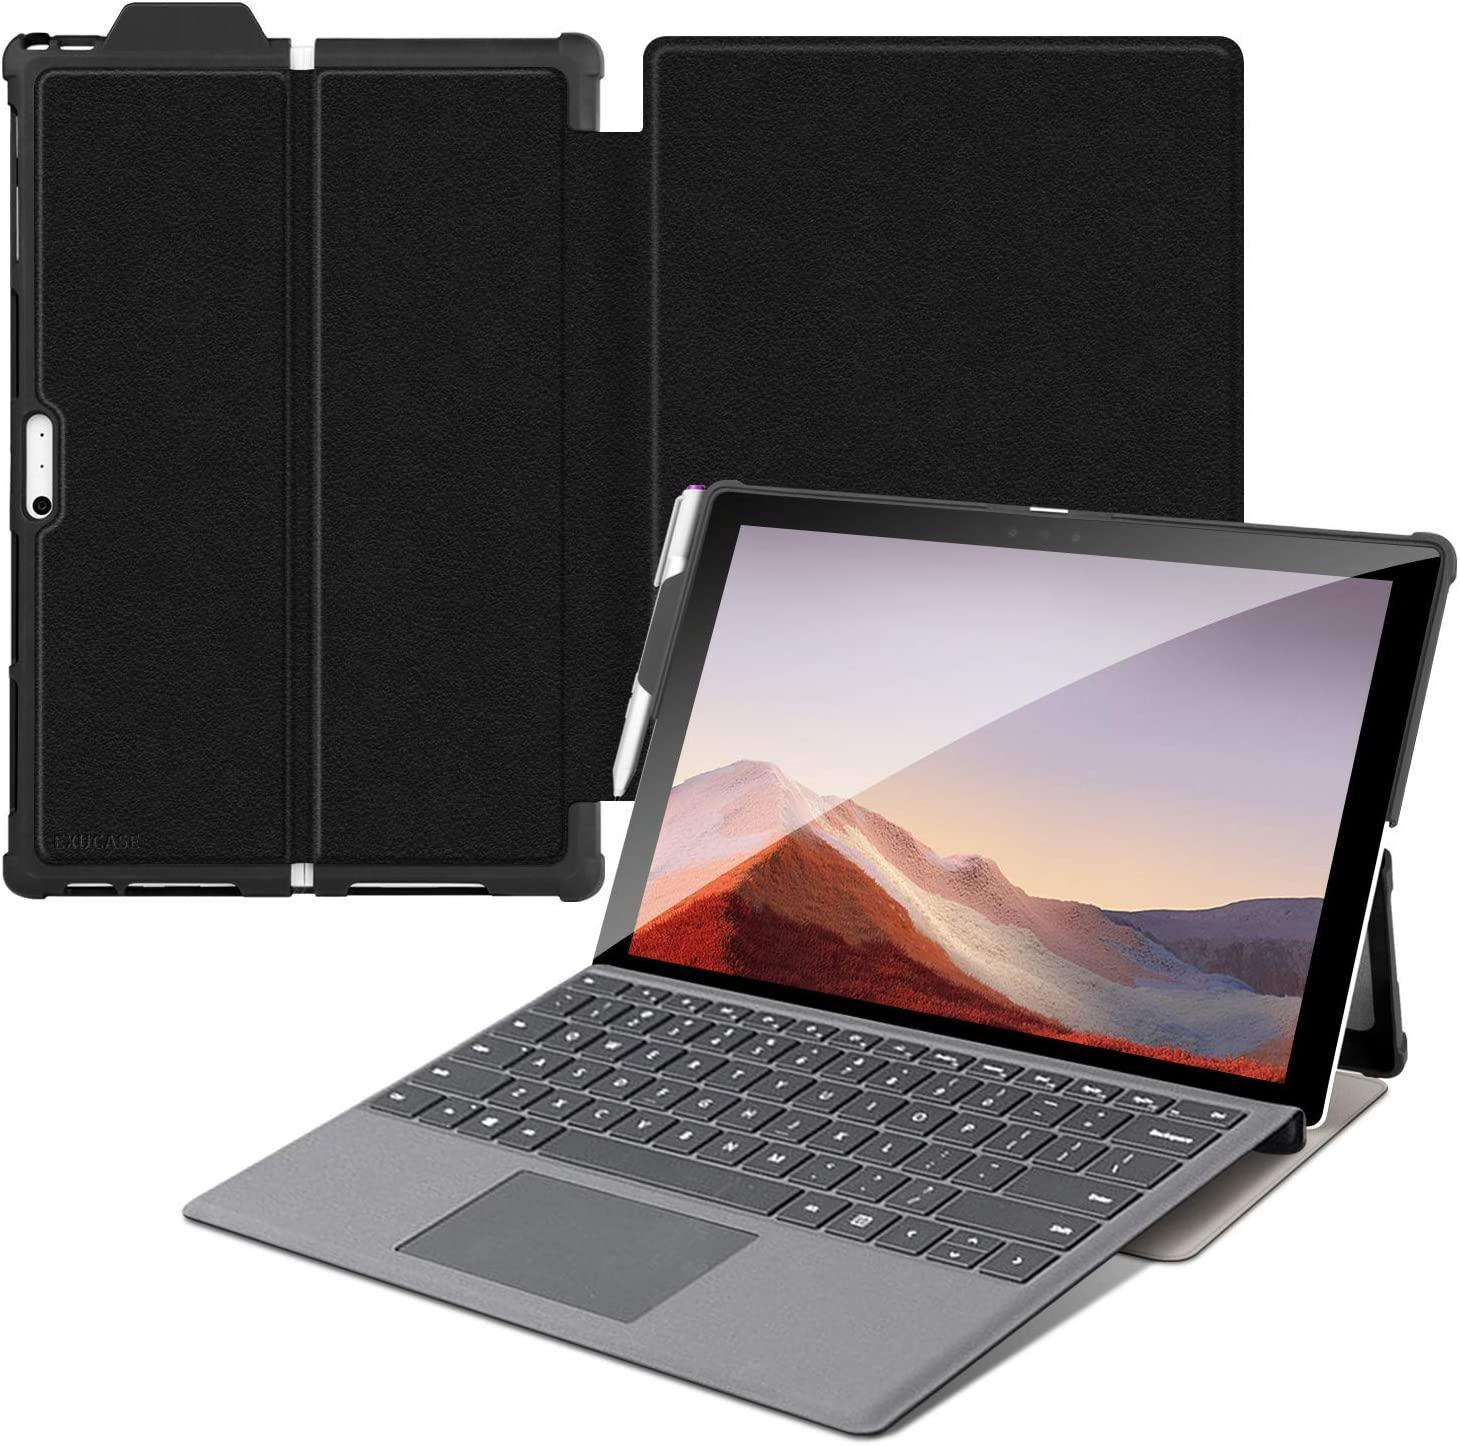 Exucase Case Fit Microsoft Surface Pro 7/ Pro 6/ Pro 5/ Pro 4 with Kickstand+Pen Holder, Soft Shockproof Stand Cover Protective Cases for Laptop Computers Compatible with Type Cover Keyboard, Black